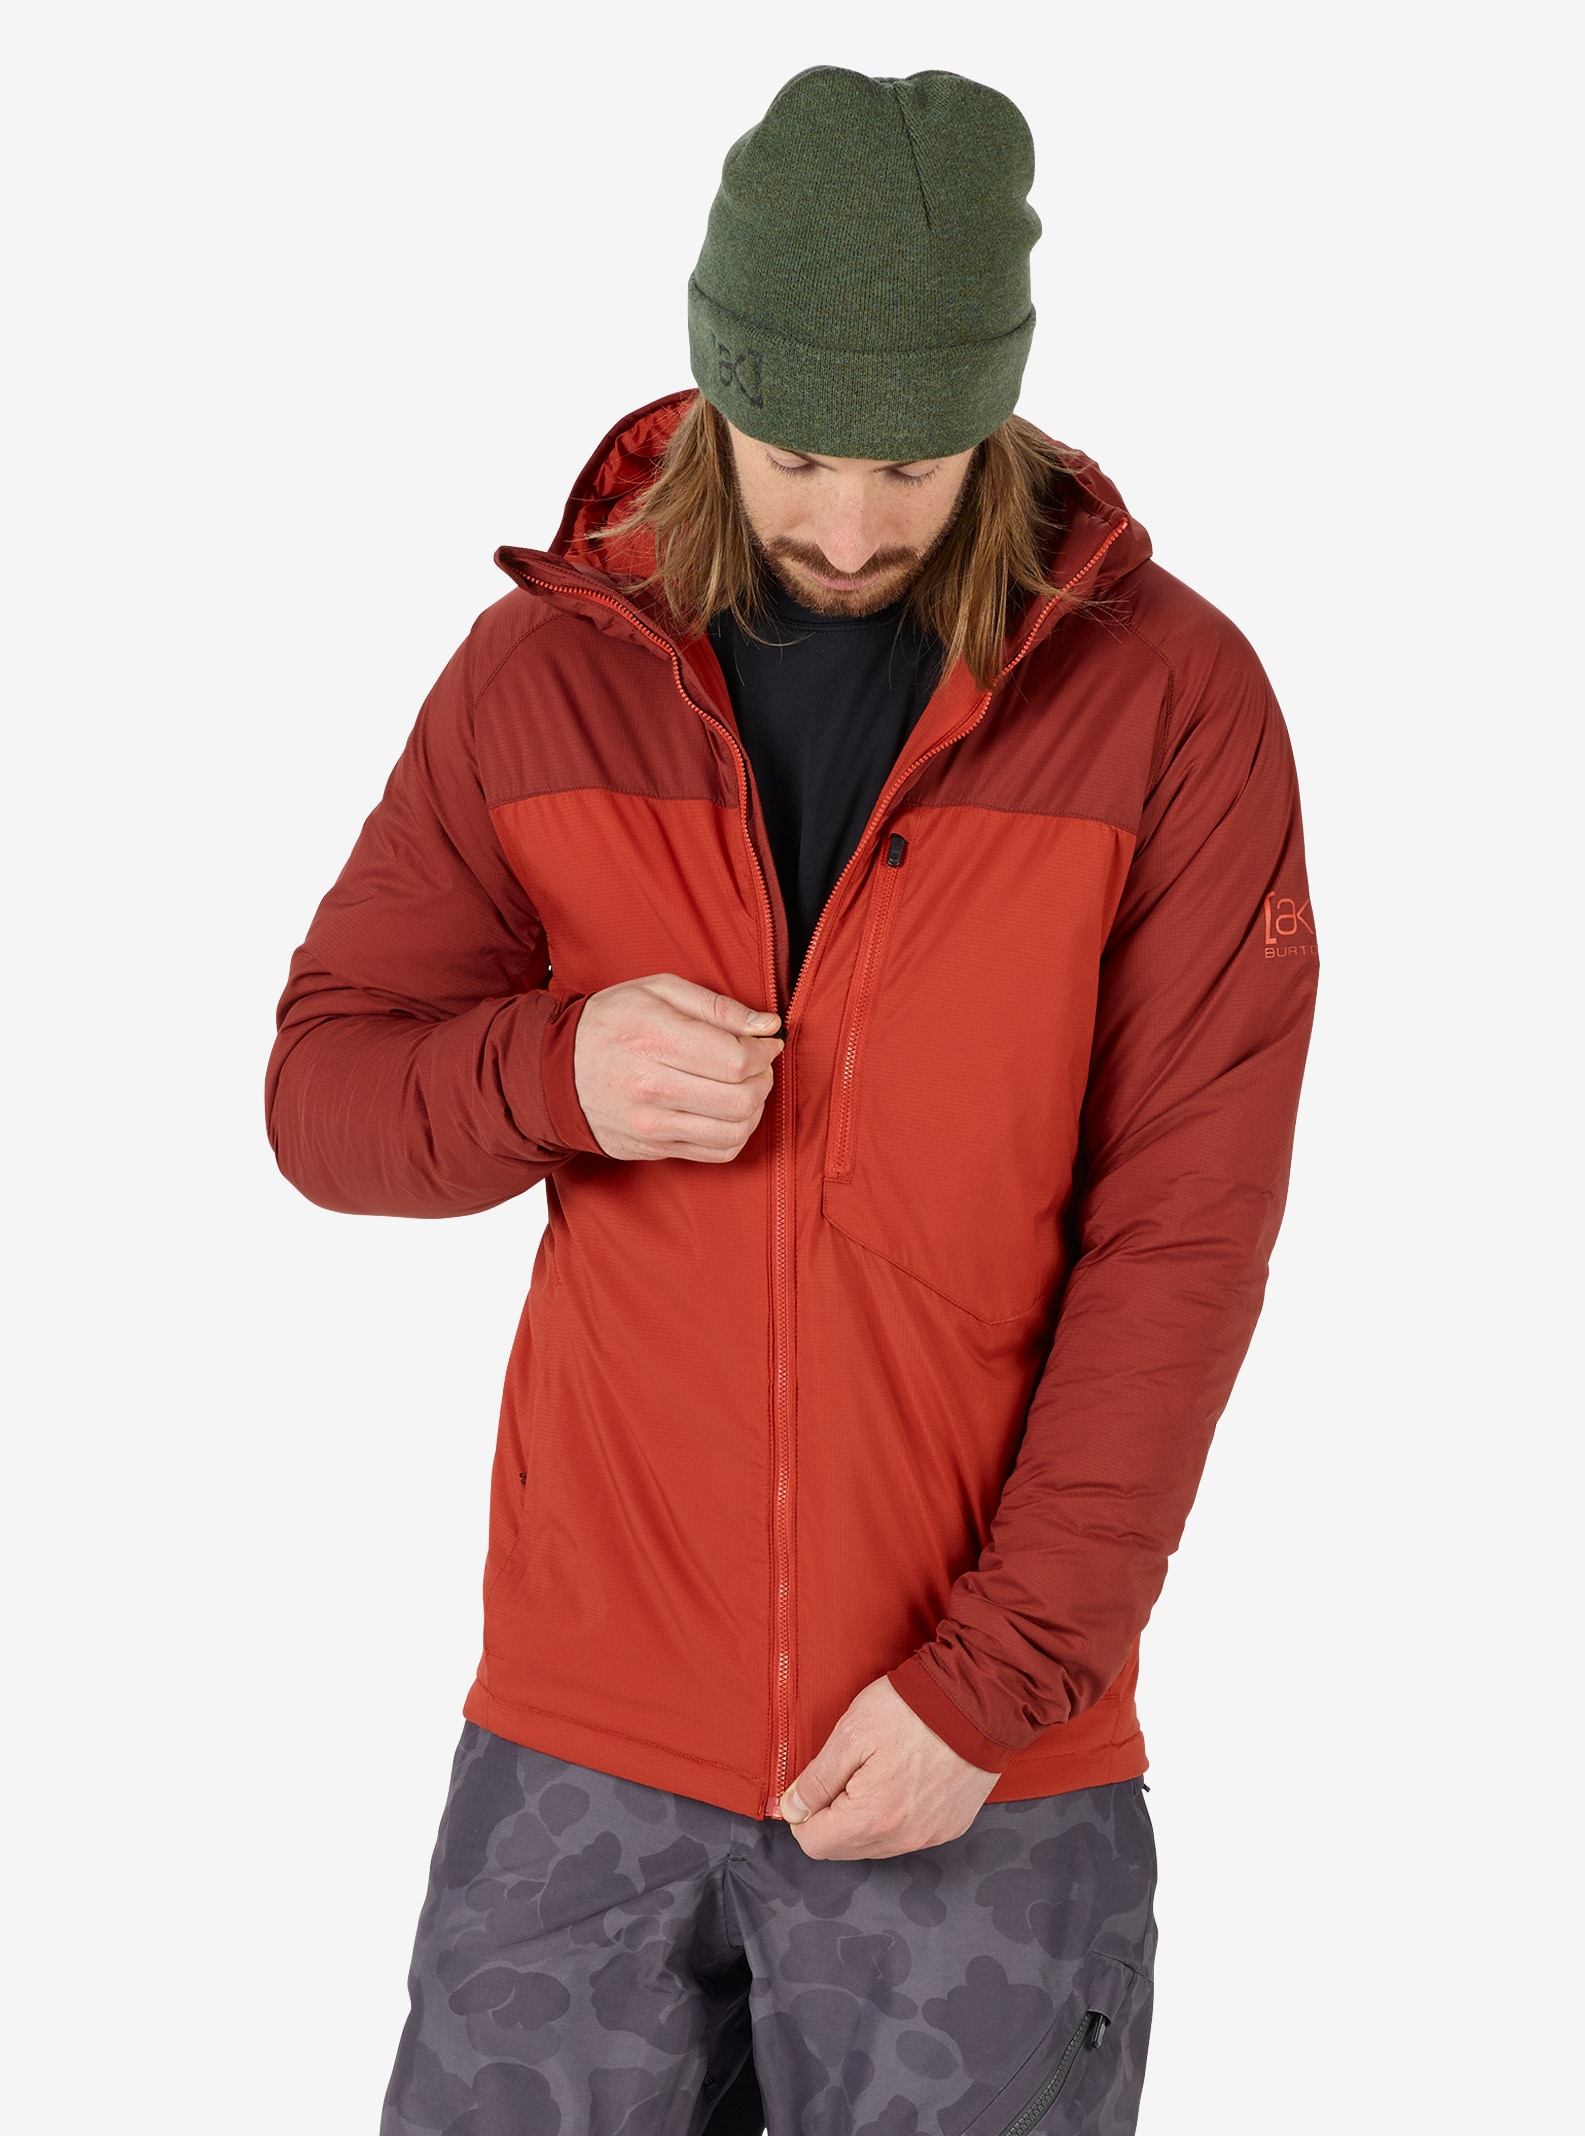 Men's Burton [ak] FZ Insulator Jacket shown in Bitters / Fired Brick